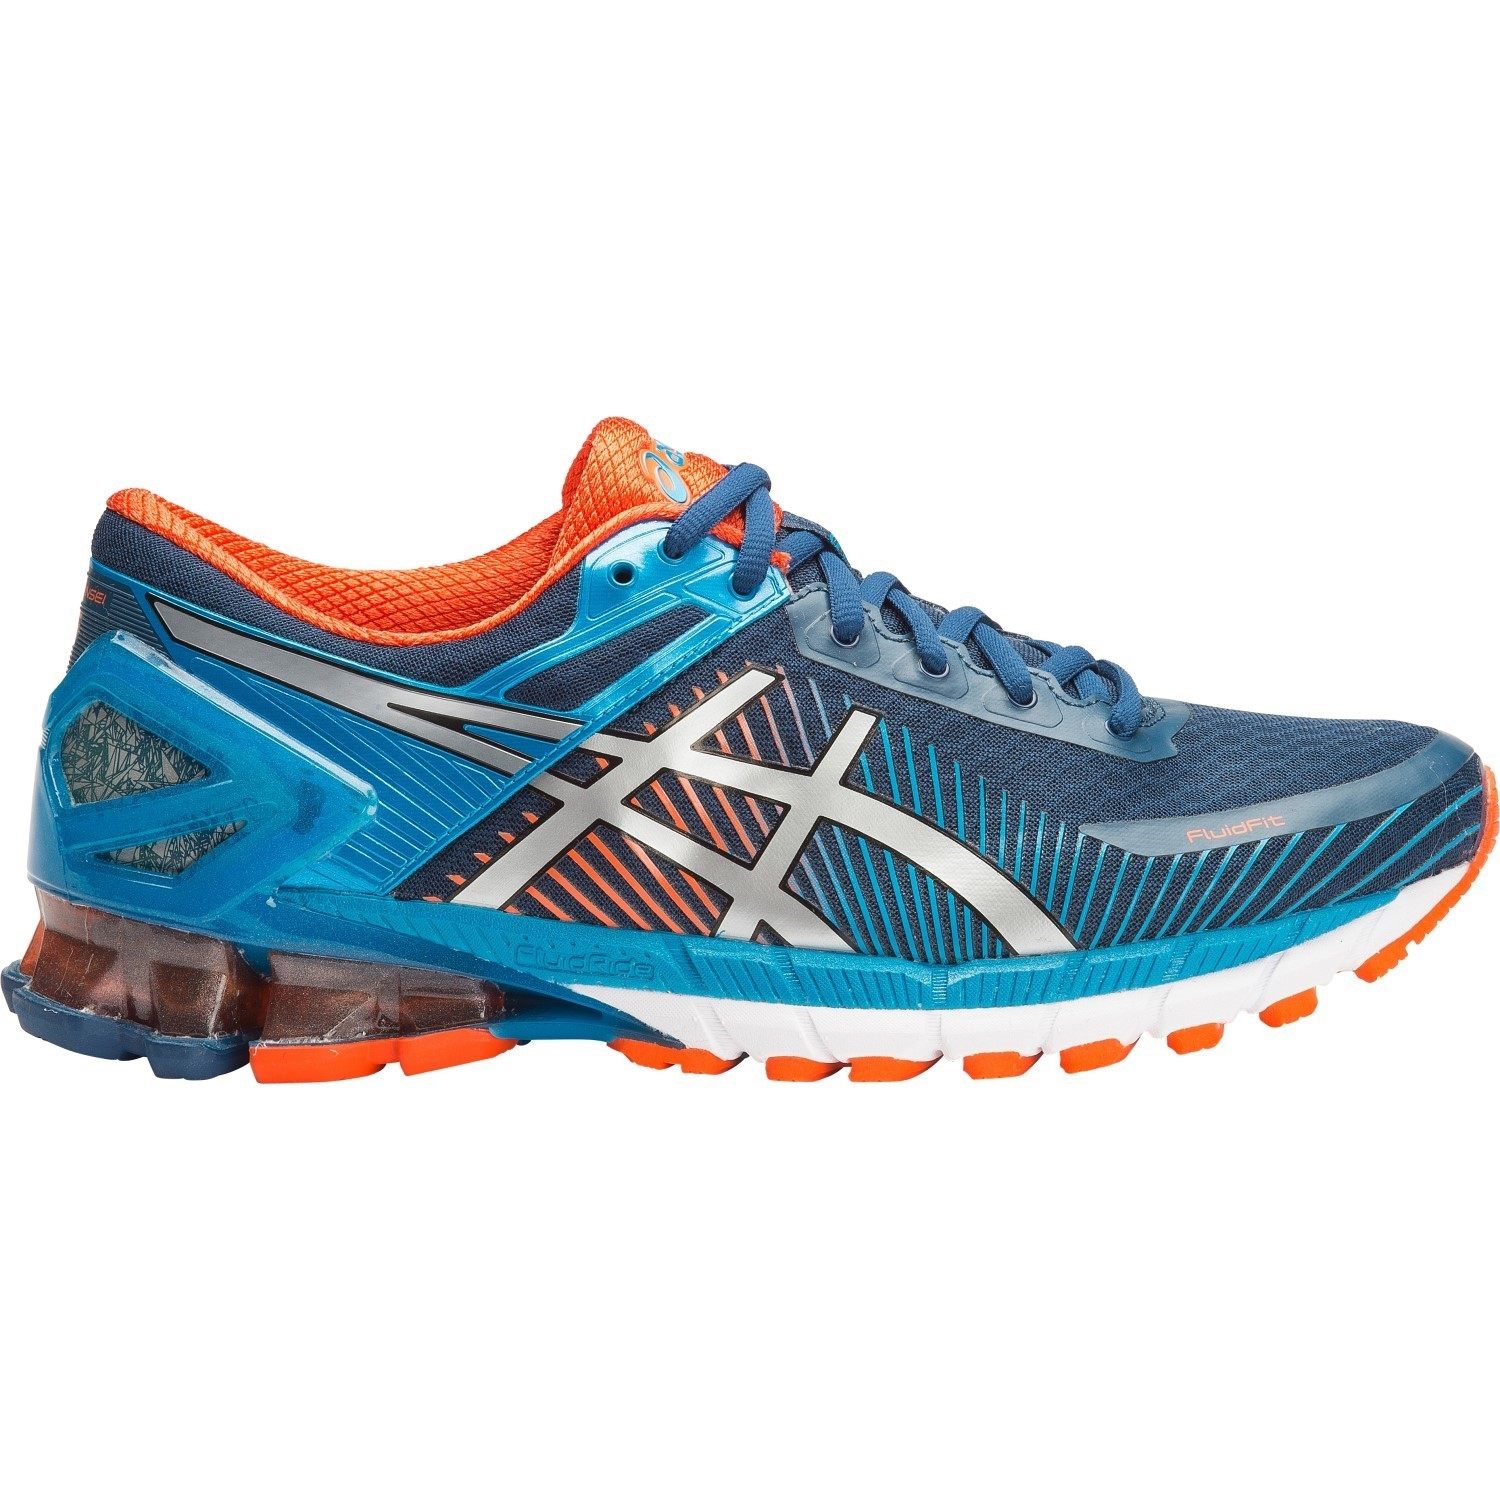 asics kinsei 6 mens running shoes poseidon silver blue jewel online sportitude. Black Bedroom Furniture Sets. Home Design Ideas